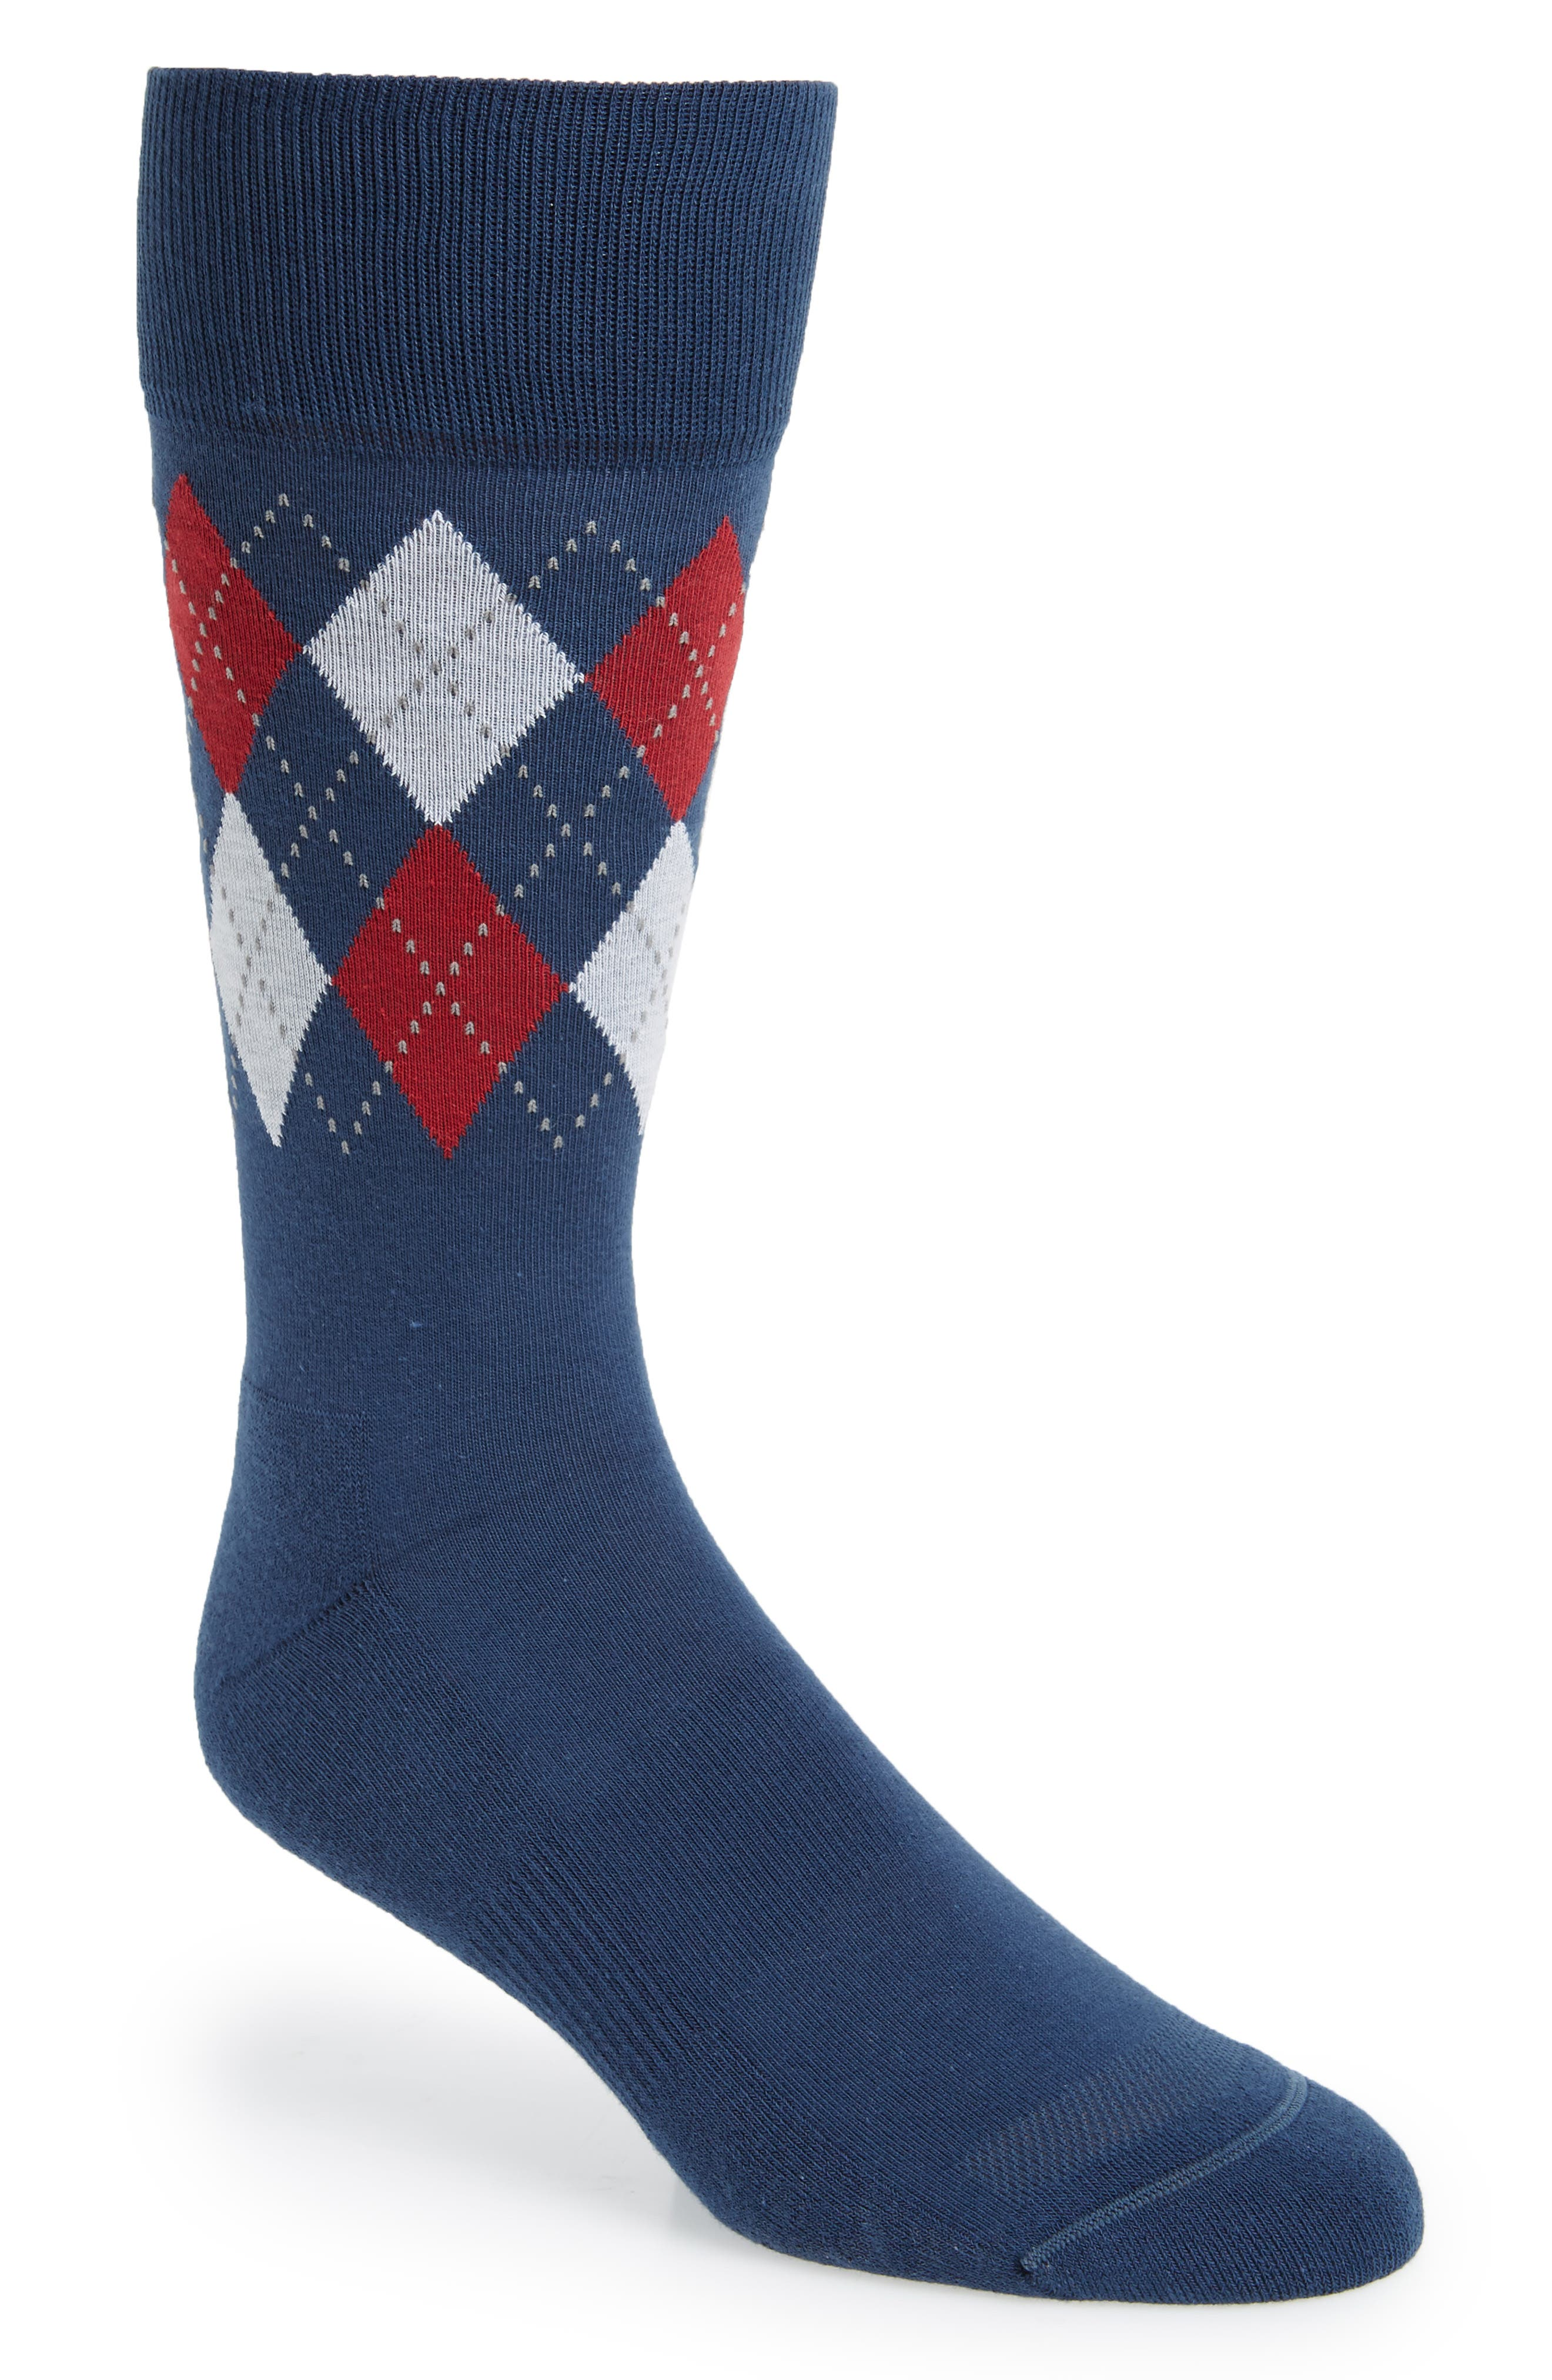 Clearance Wiki Pay With Visa Cheap Price Nordstrom Men's Shop Argyle Band Socks (3 for $30) Clearance Collections m7Clk